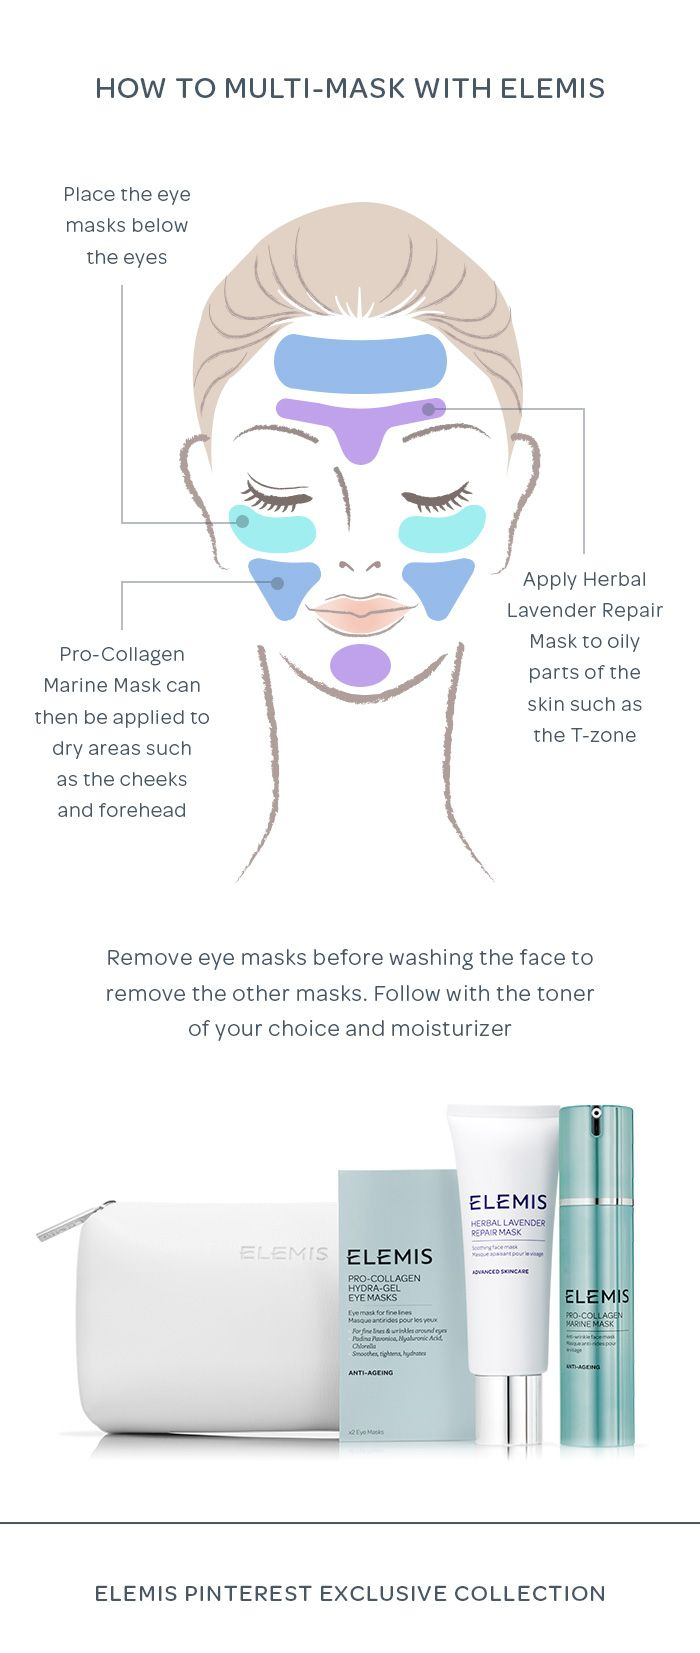 Multi-Masking Skincare Tutorial with ELEMIS. To multi-mask, place the eye masks below the eyes before applying HERBAL LAVENDER REPAIR MASK  to oily parts of the skin such as the T-zone. PRO-COLLAGEN MARINE MASK  can then be applied to dry areas such as the cheeks and forehead. Your skin will be beautifully soft, smooth and toned.